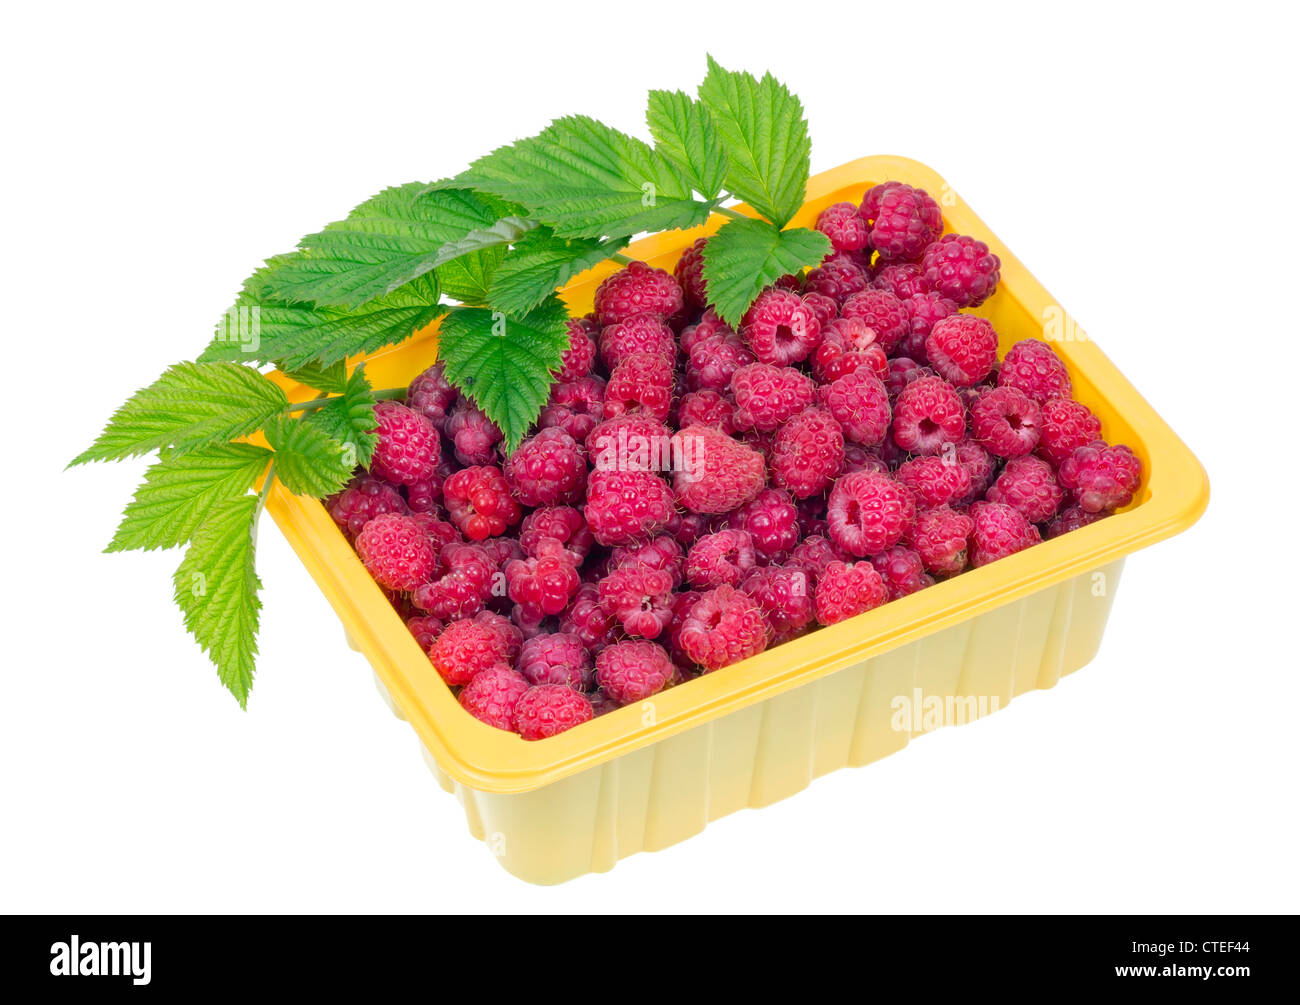 Ripe red raspberries in a yellow plastic container. Fruits are grown without fertilizers, environmentally friendly - Stock Image